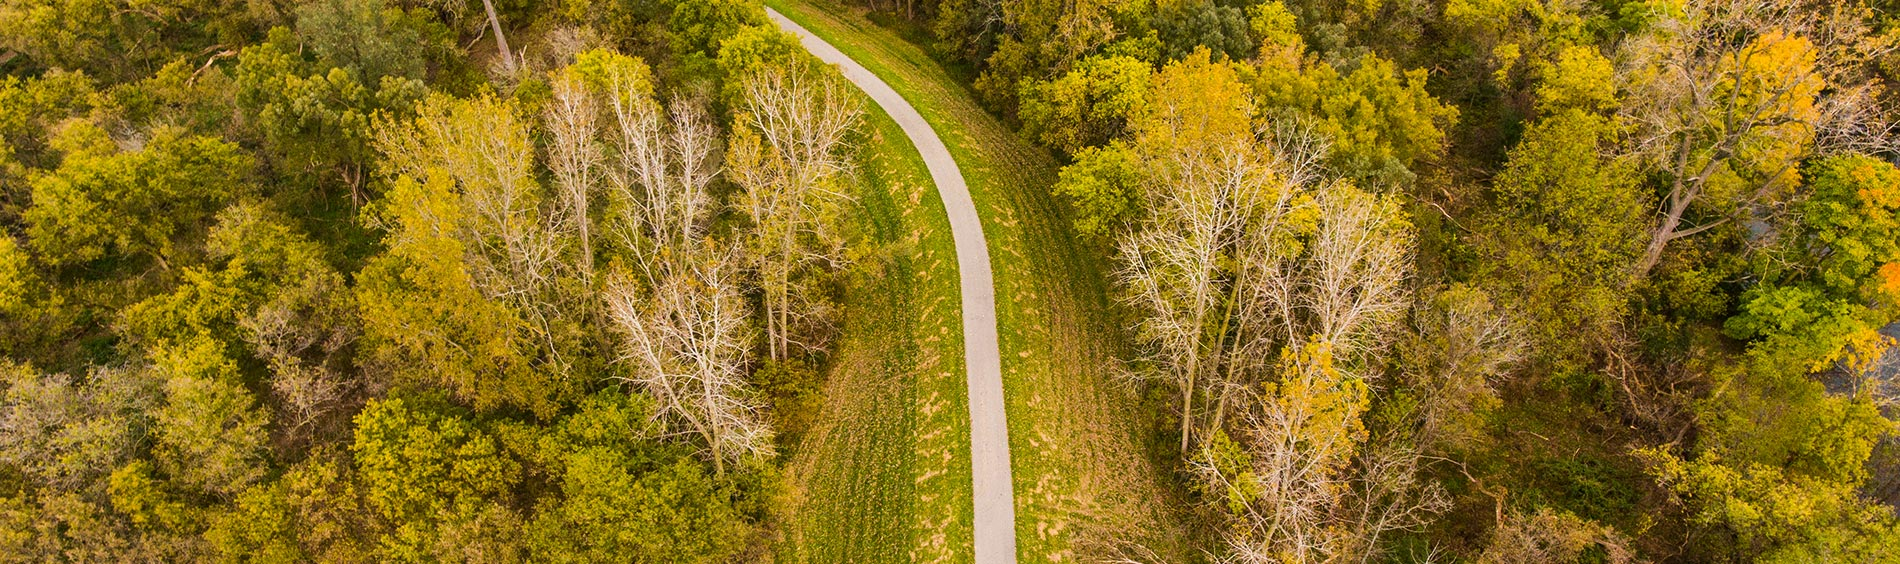 aerial view or trees and trail